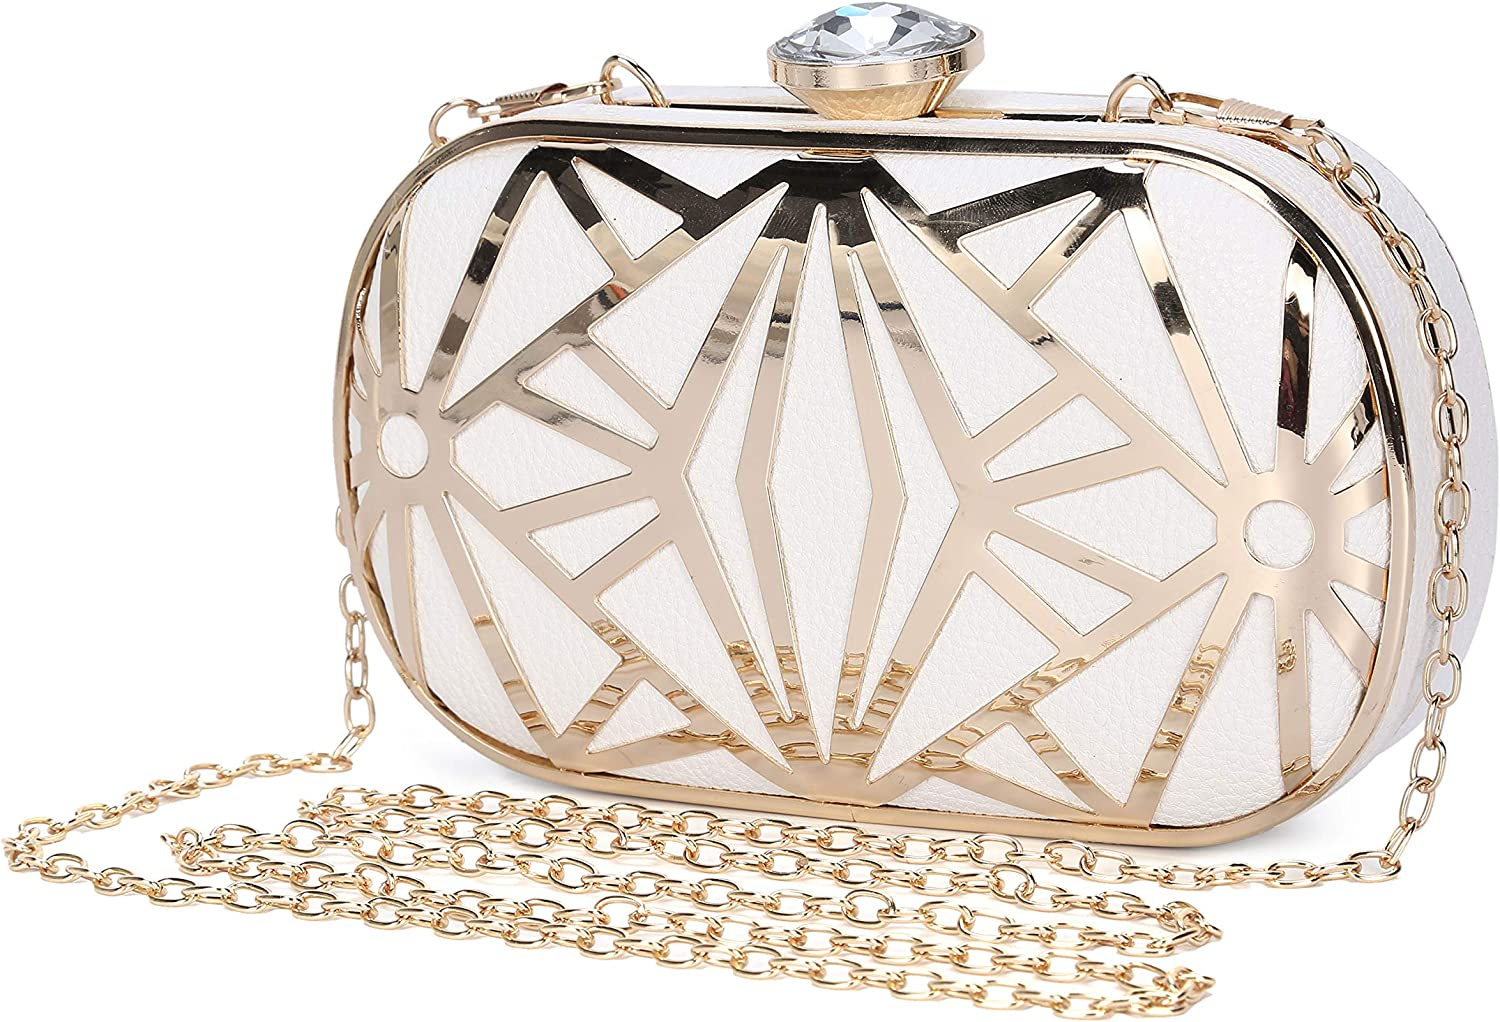 Clocolor Women Attention brand Evening Bags Exquisite Handbag Leather Metal Max 50% OFF Holl